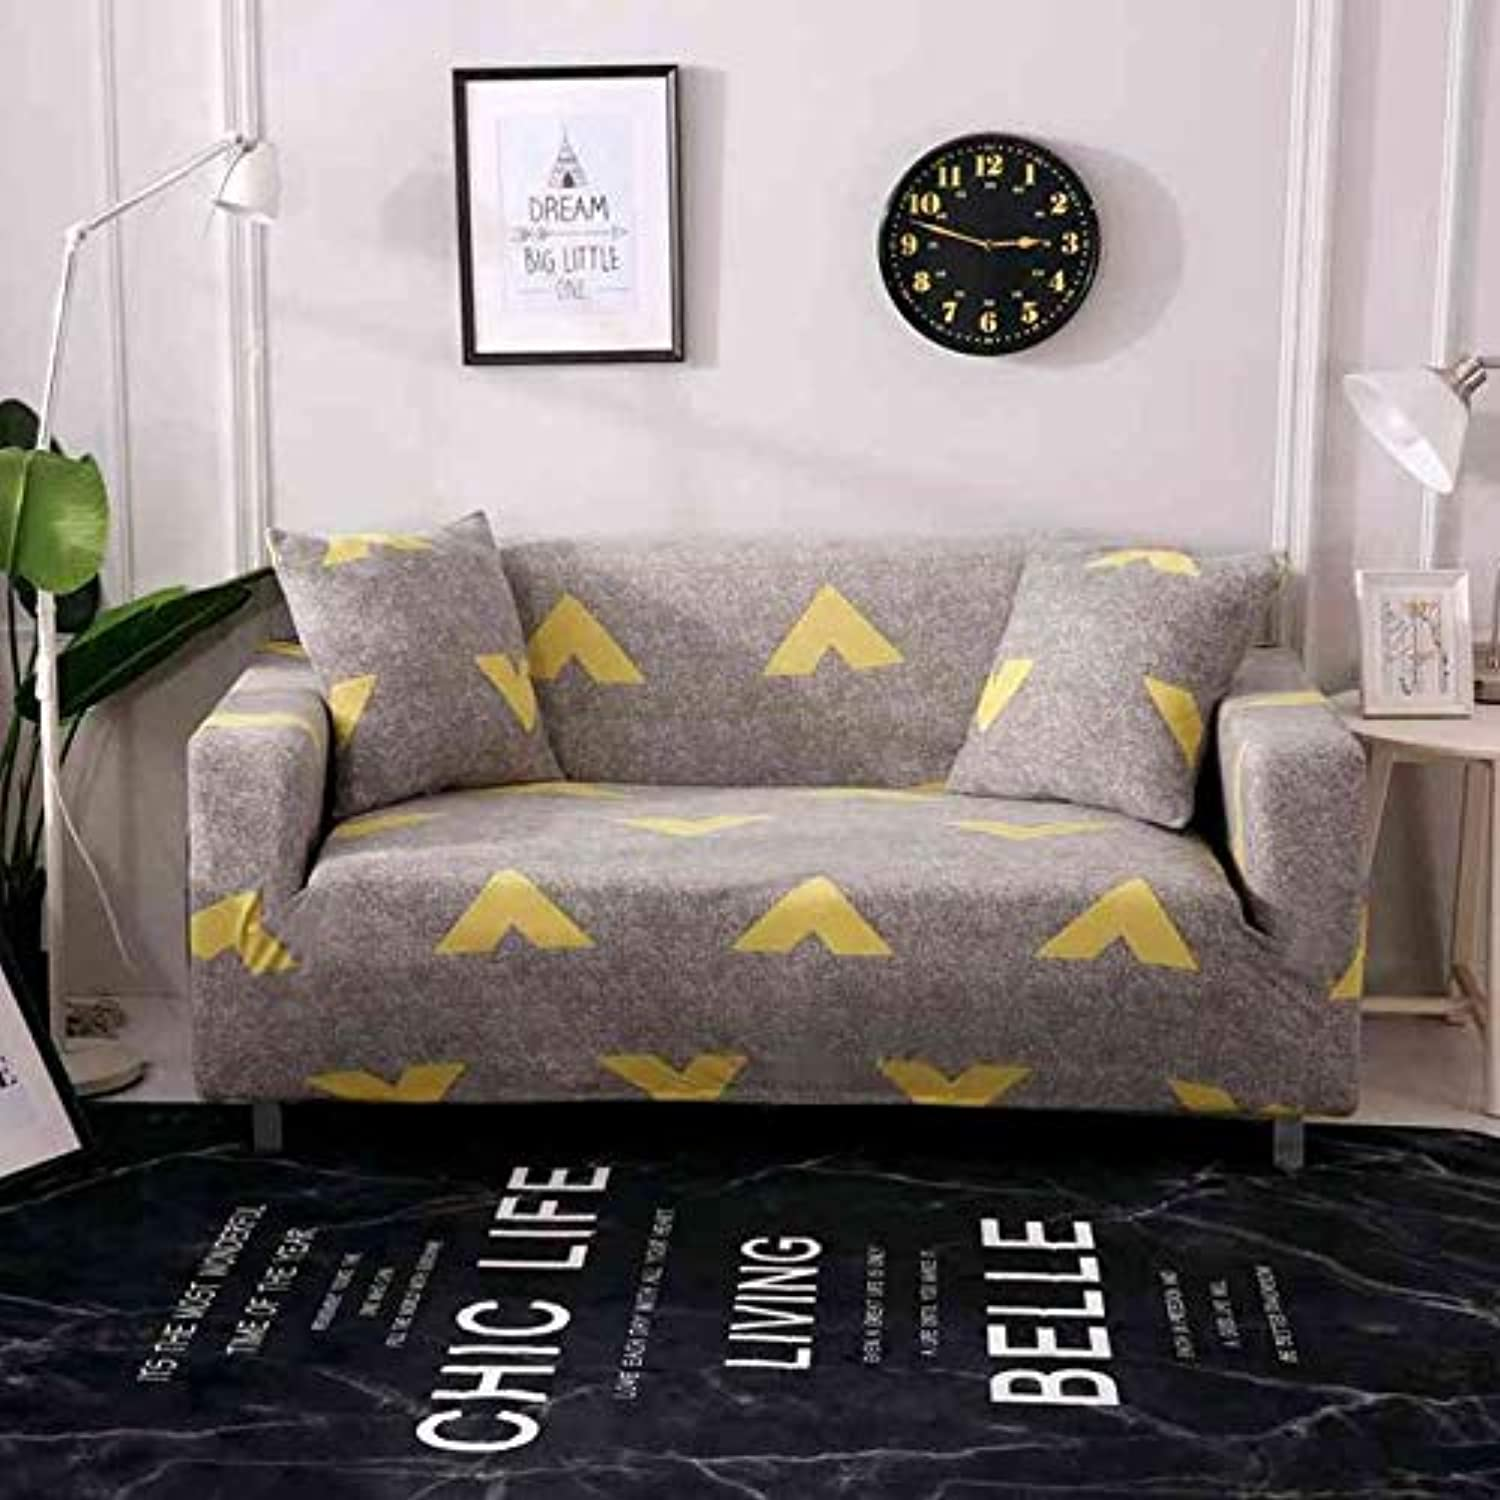 Modern Style Printed Sectional Sofa Cover 1pc One Two Three Four Seat Slipcover 100% Polyester Chaise Cover Furniture Couch Cover   color21, 1 seat Sofa Cover